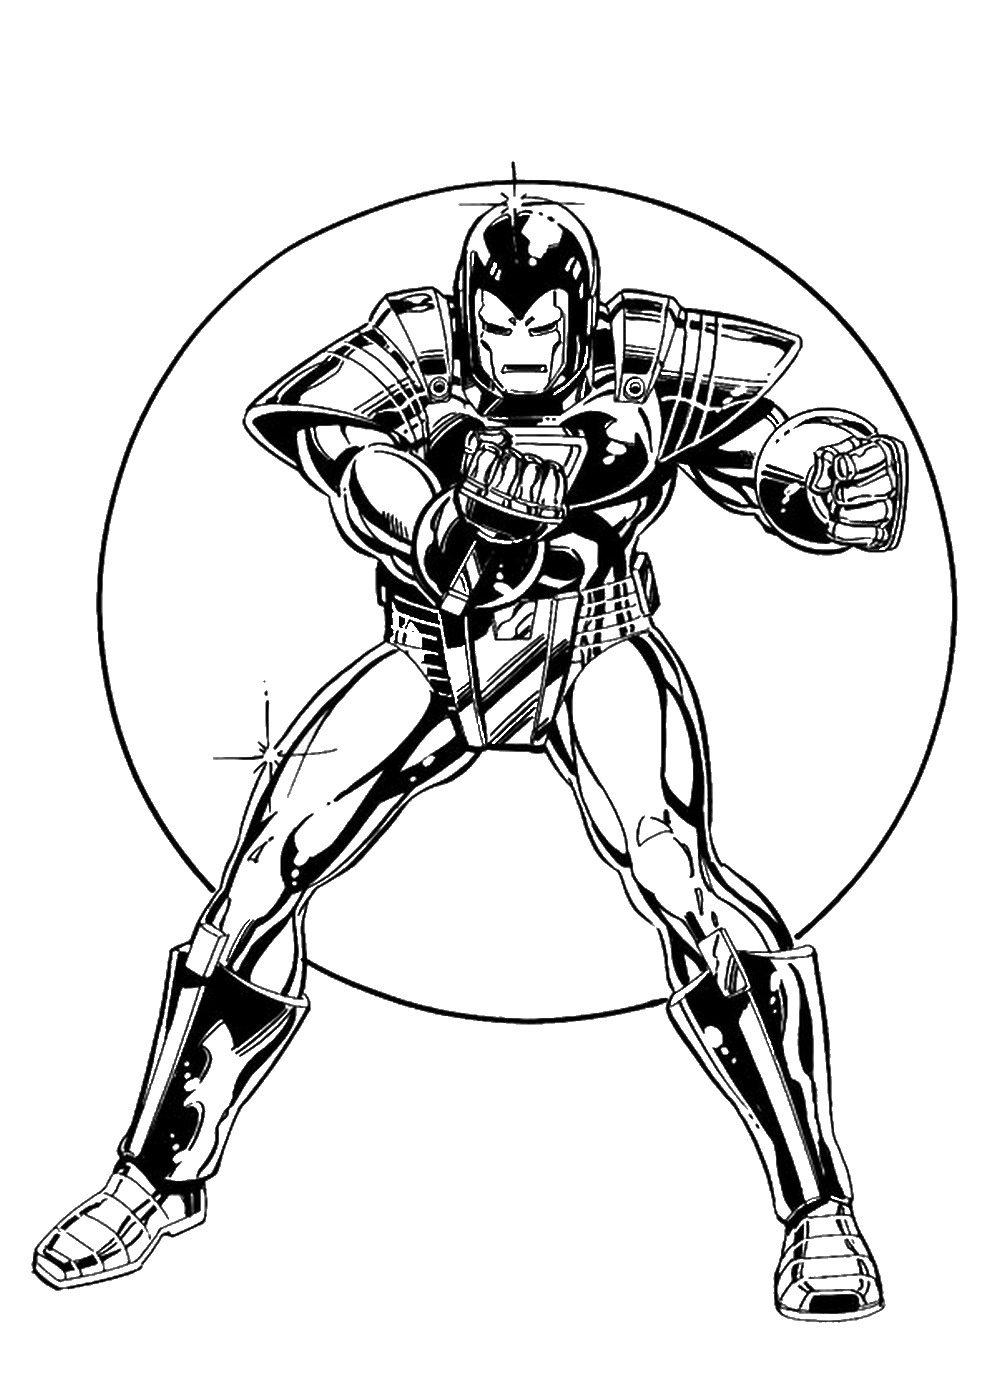 iron man pictures for colouring iron man colouring pictures to print for kidsfree colouring man for pictures iron